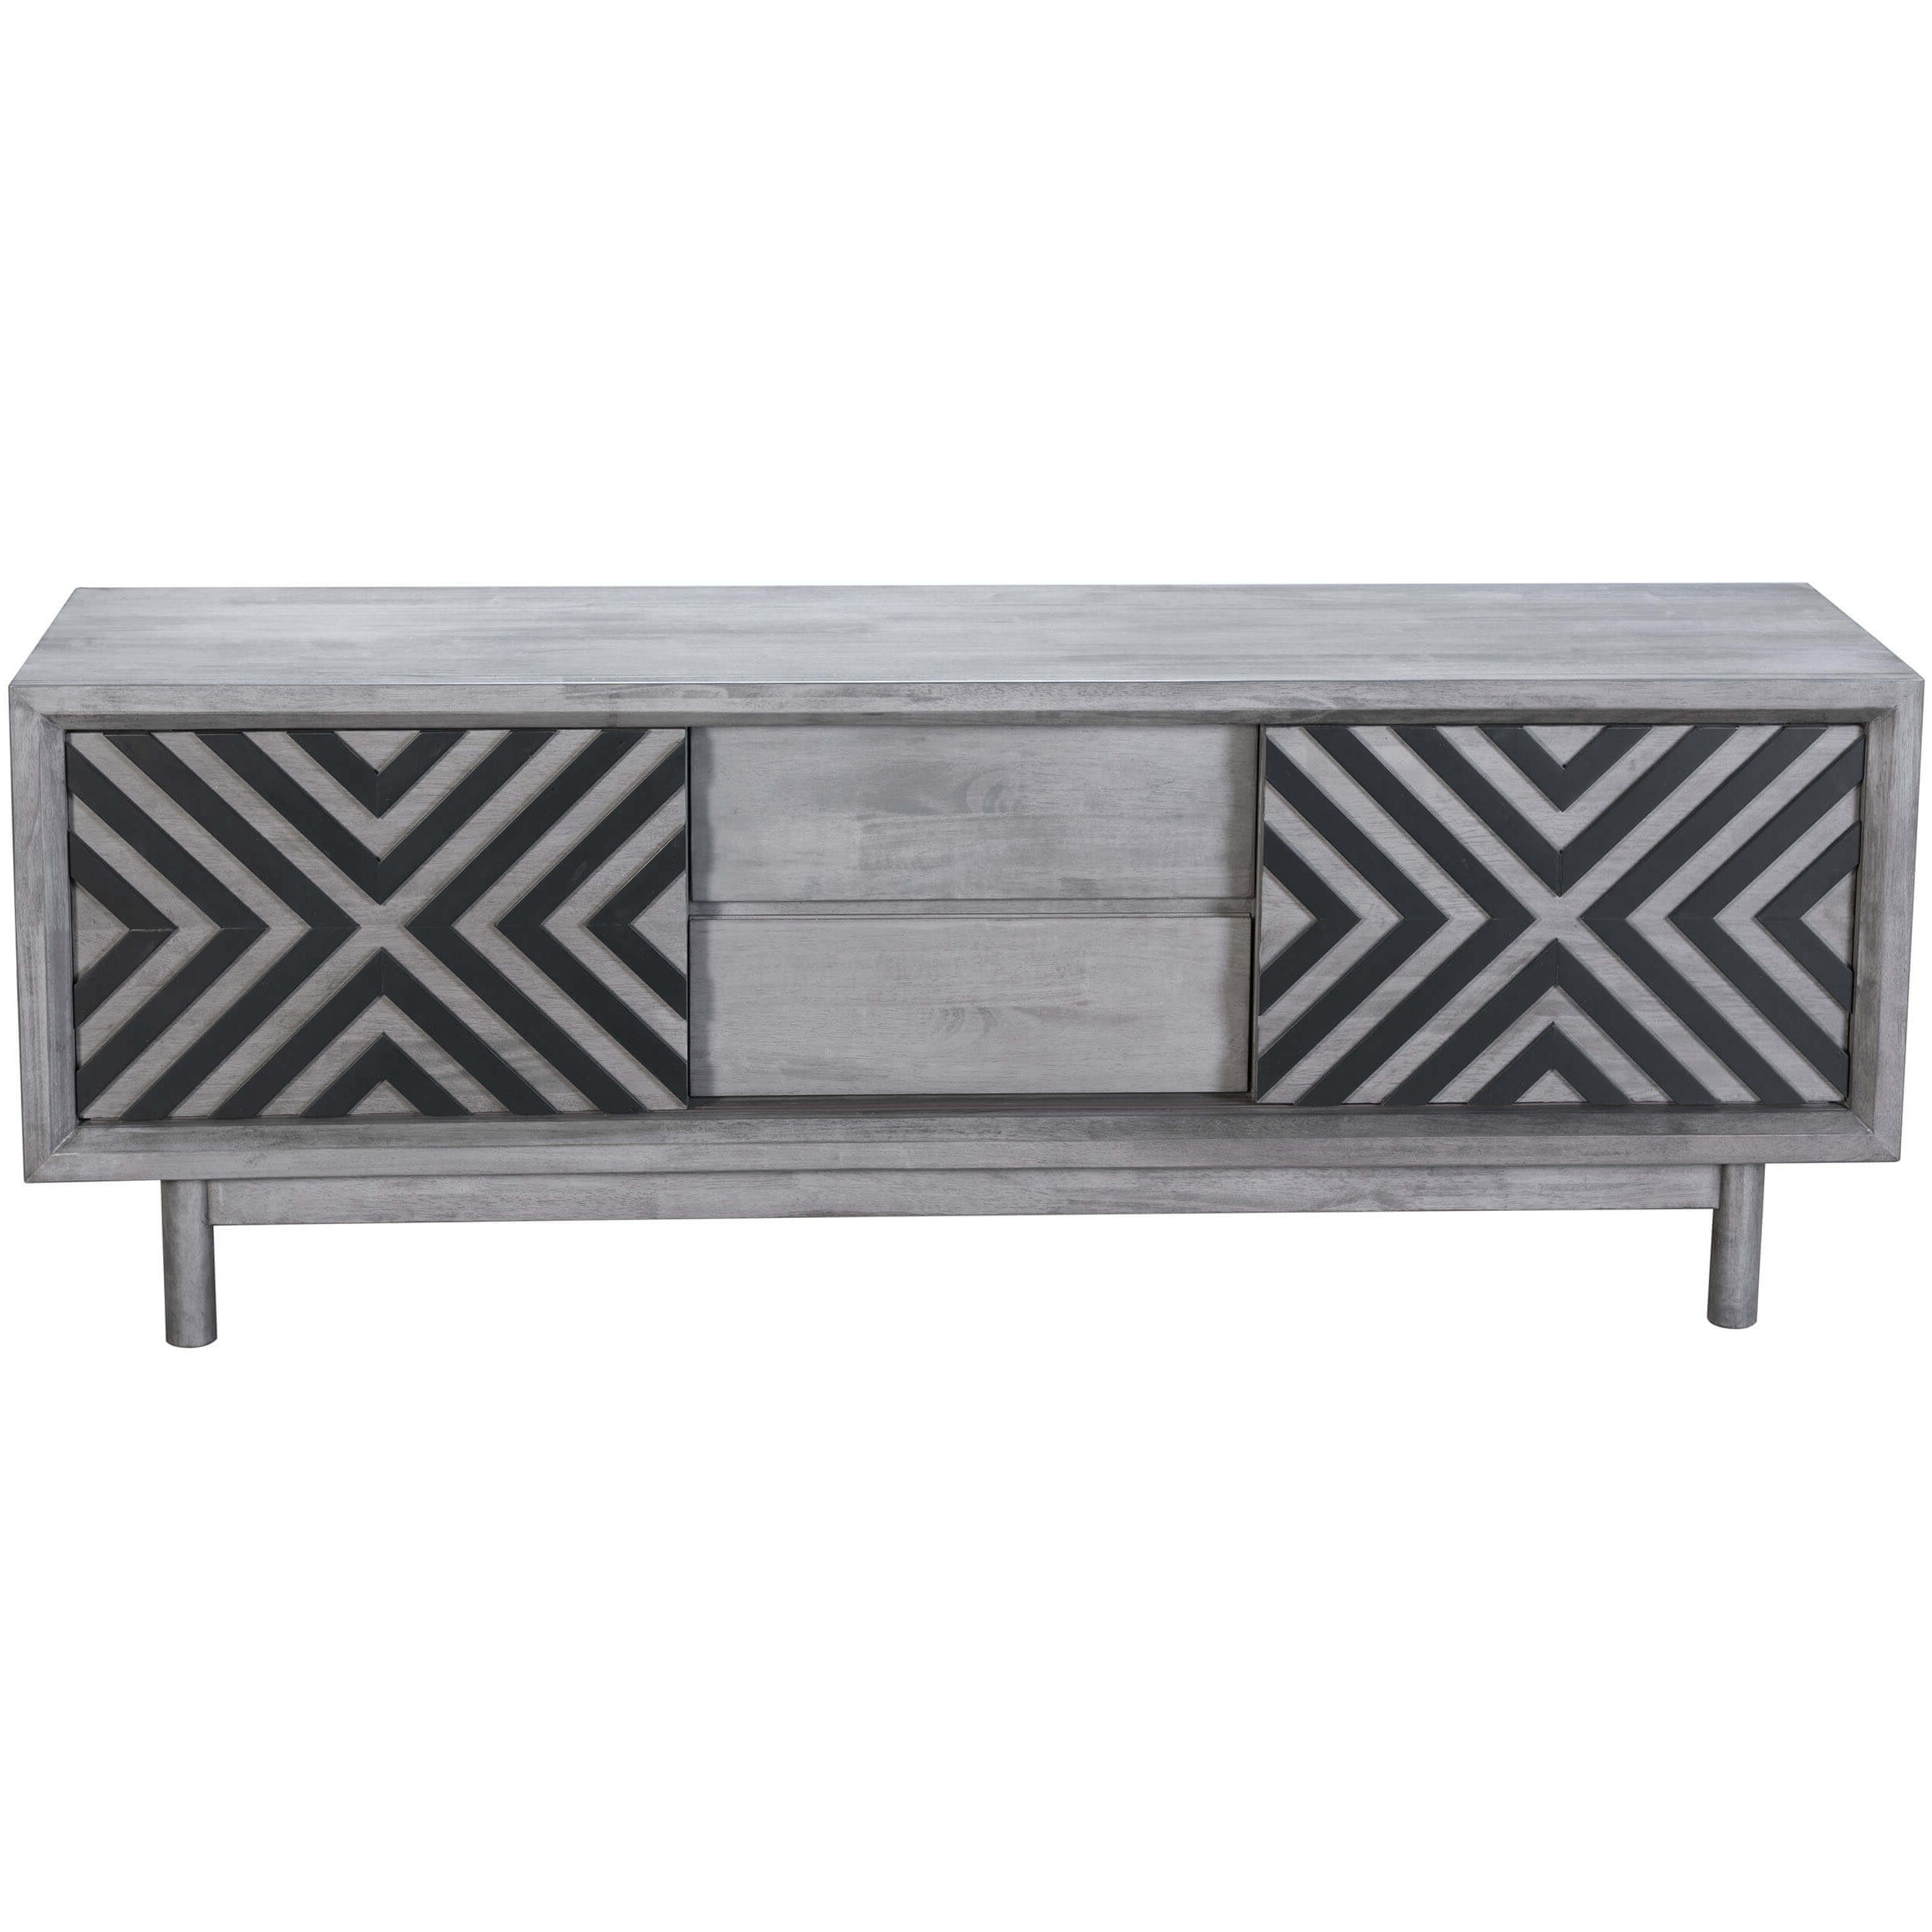 Raven Tv Stand, Old Gray – Zuo Modern – Furniture Inside Raven Grey Tv Stands (Gallery 2 of 20)